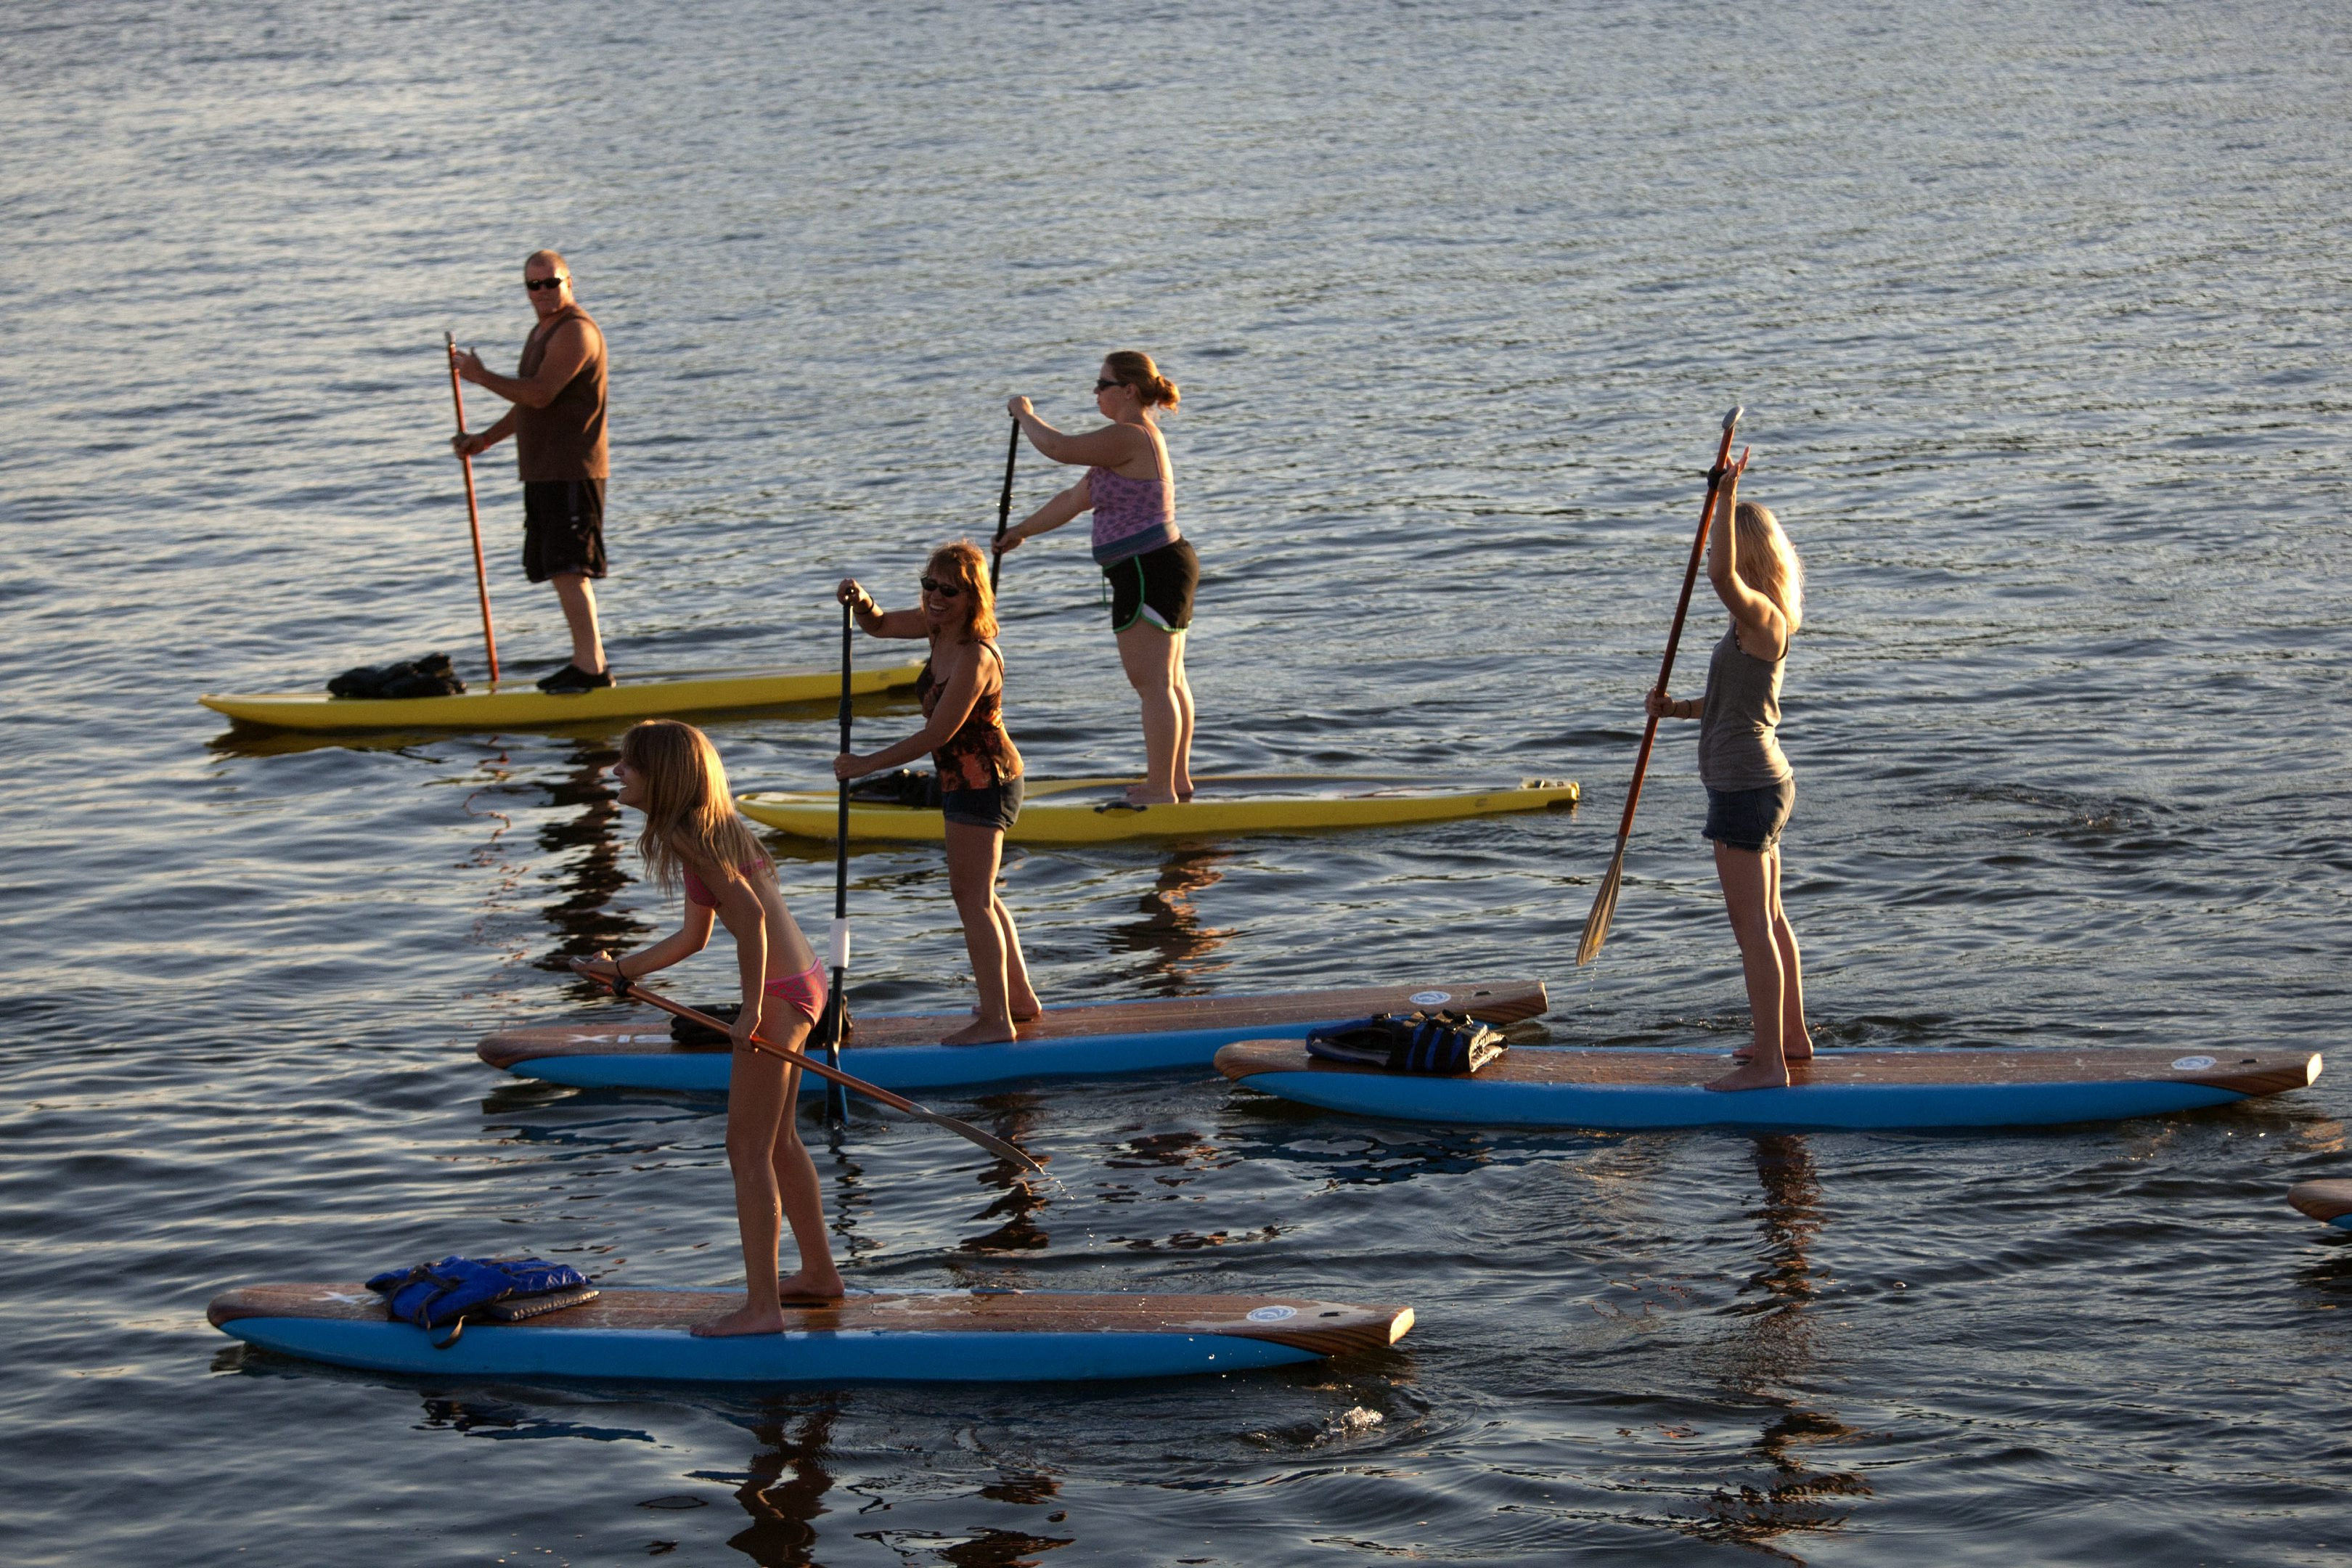 Paddleboarders make their way along Buffalo's waterfront, one of the earliest signs of activity resulted from Great Lakes restoration efforts. (News file photo)